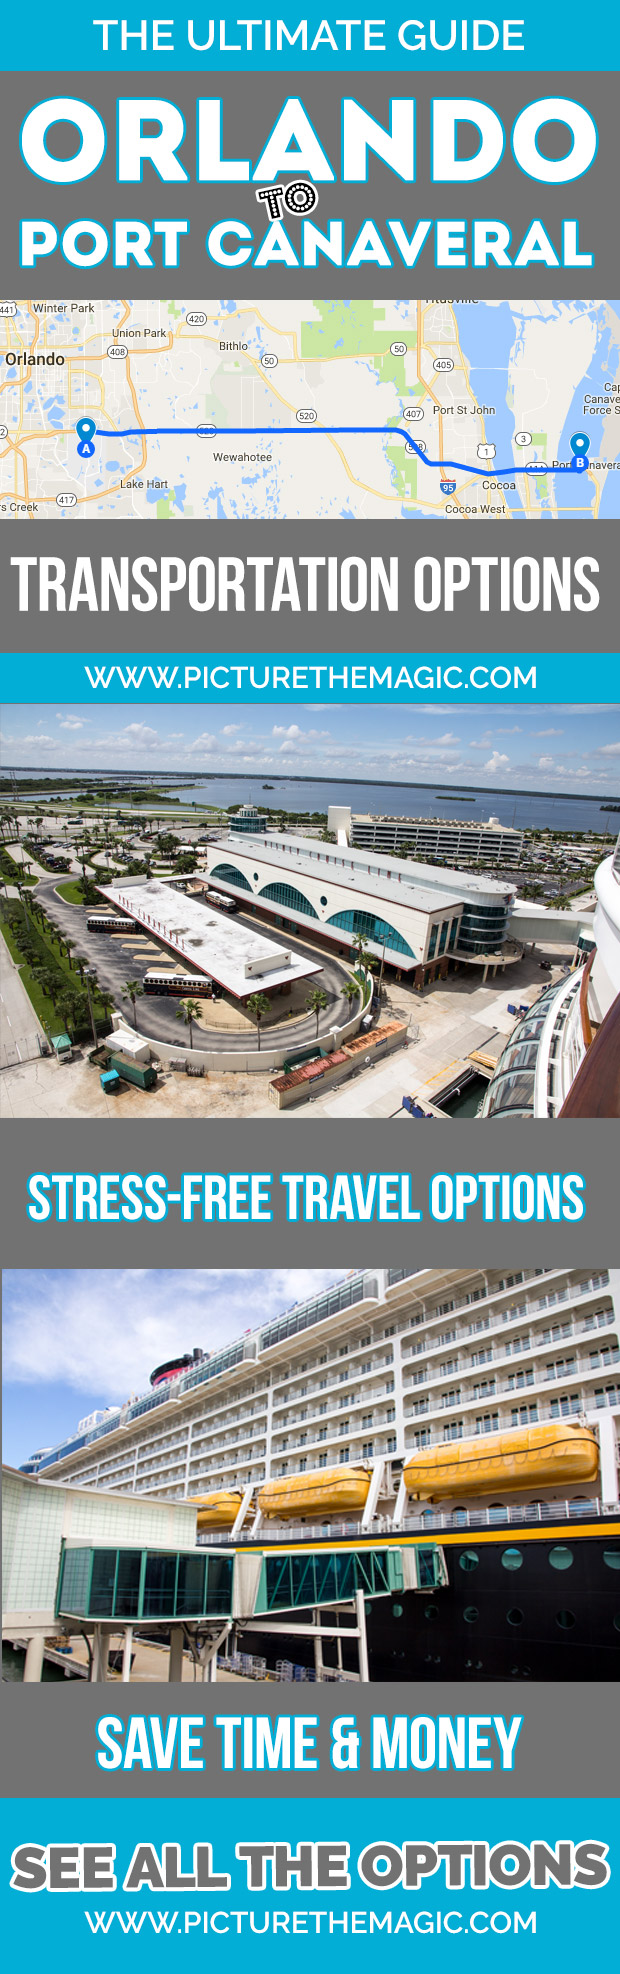 Orlando To Port Canaveral Transportation Options: The Ultimate Guide